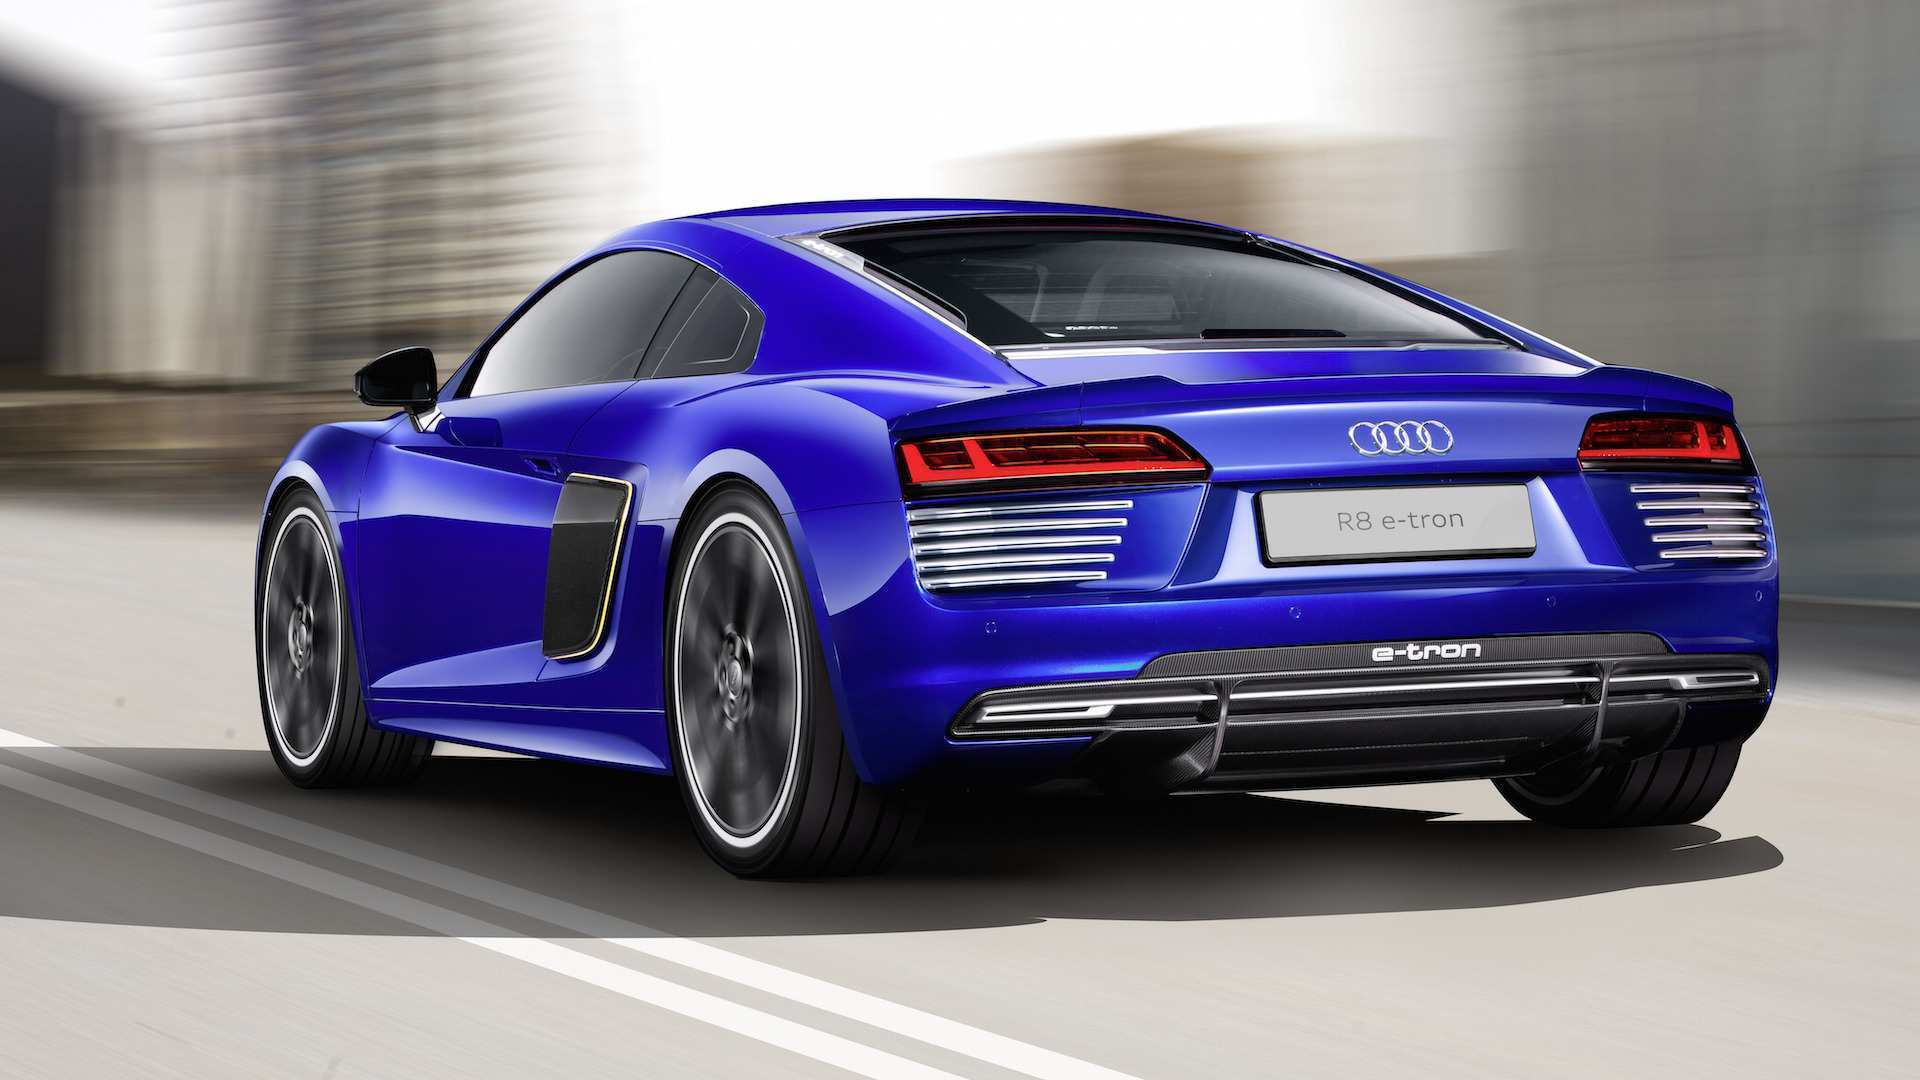 55 The 2020 Audi R8 E Tron Performance